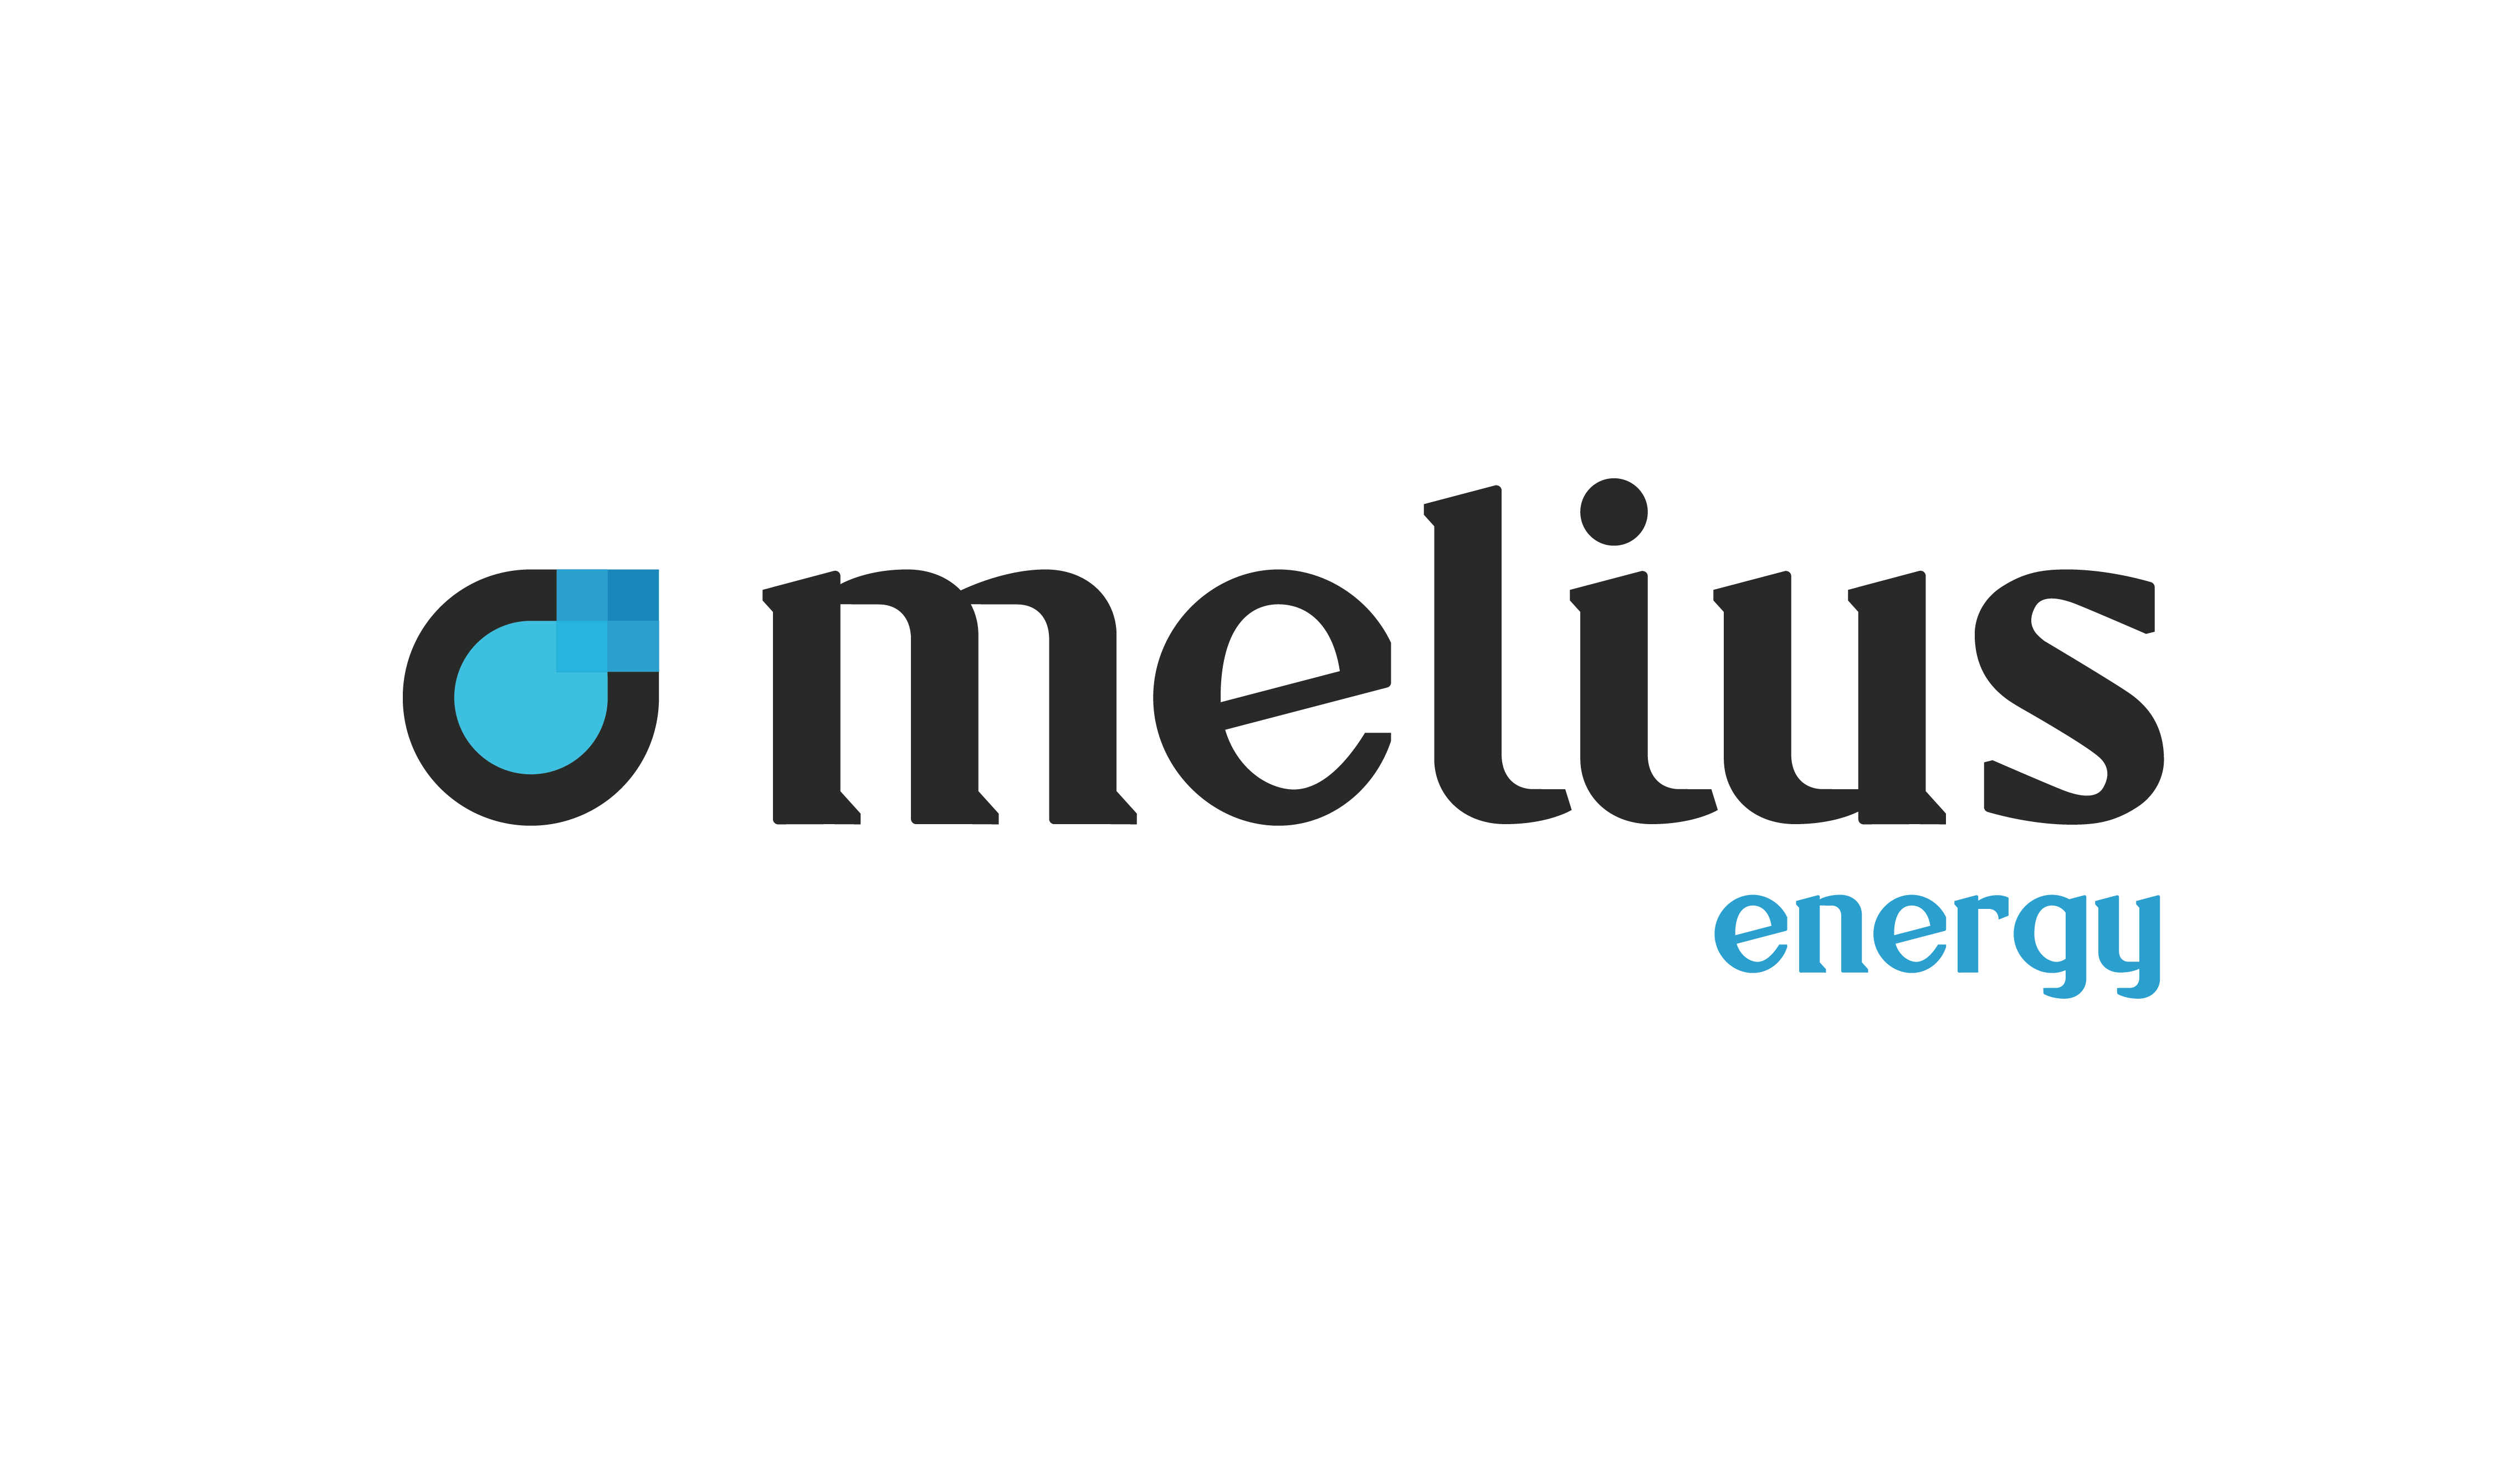 Melius Energy Ships Bitumen to International Markets From the Port of Prince Rupert